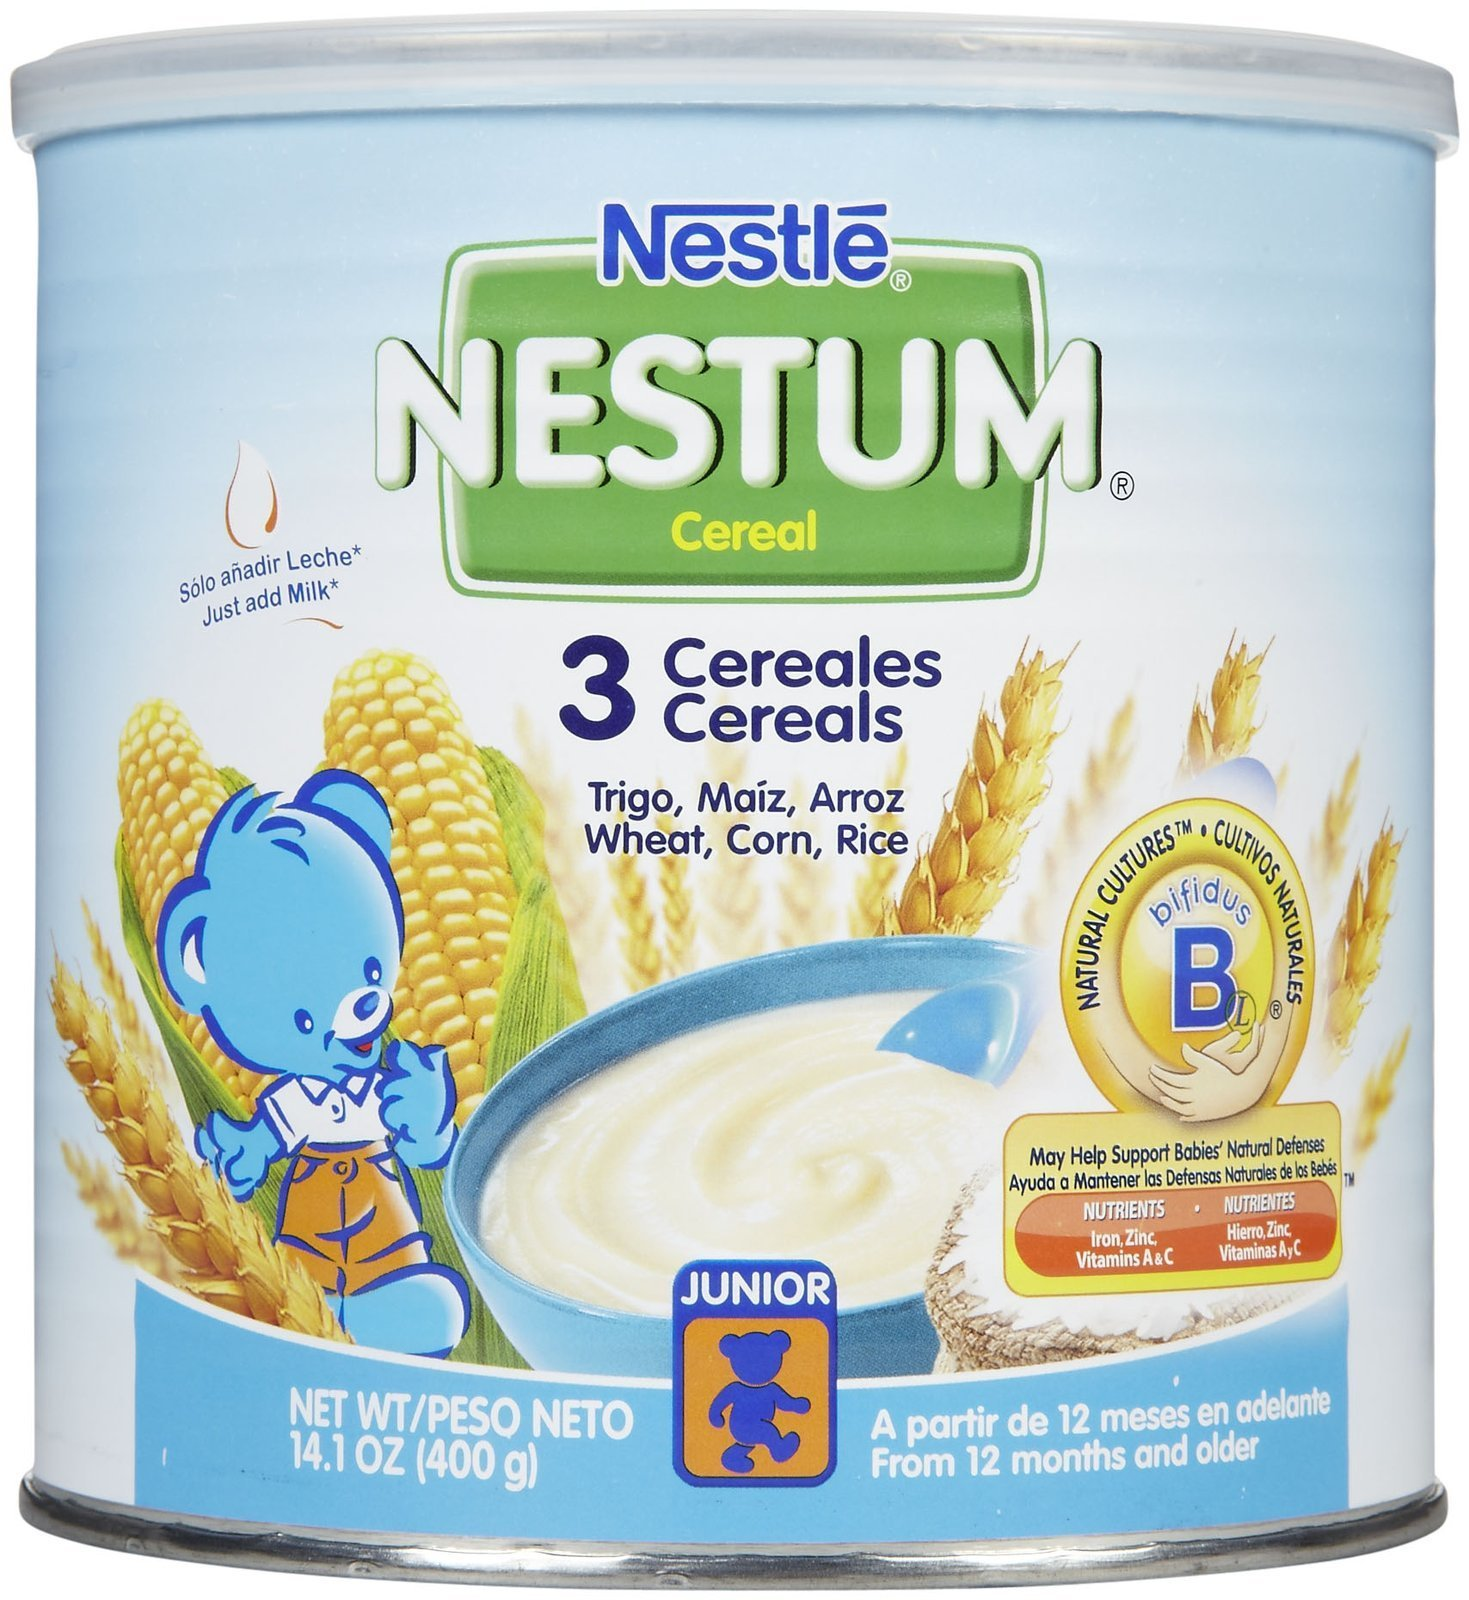 Nestum Toddler Cereal - 3 Cereals - 14.1 oz